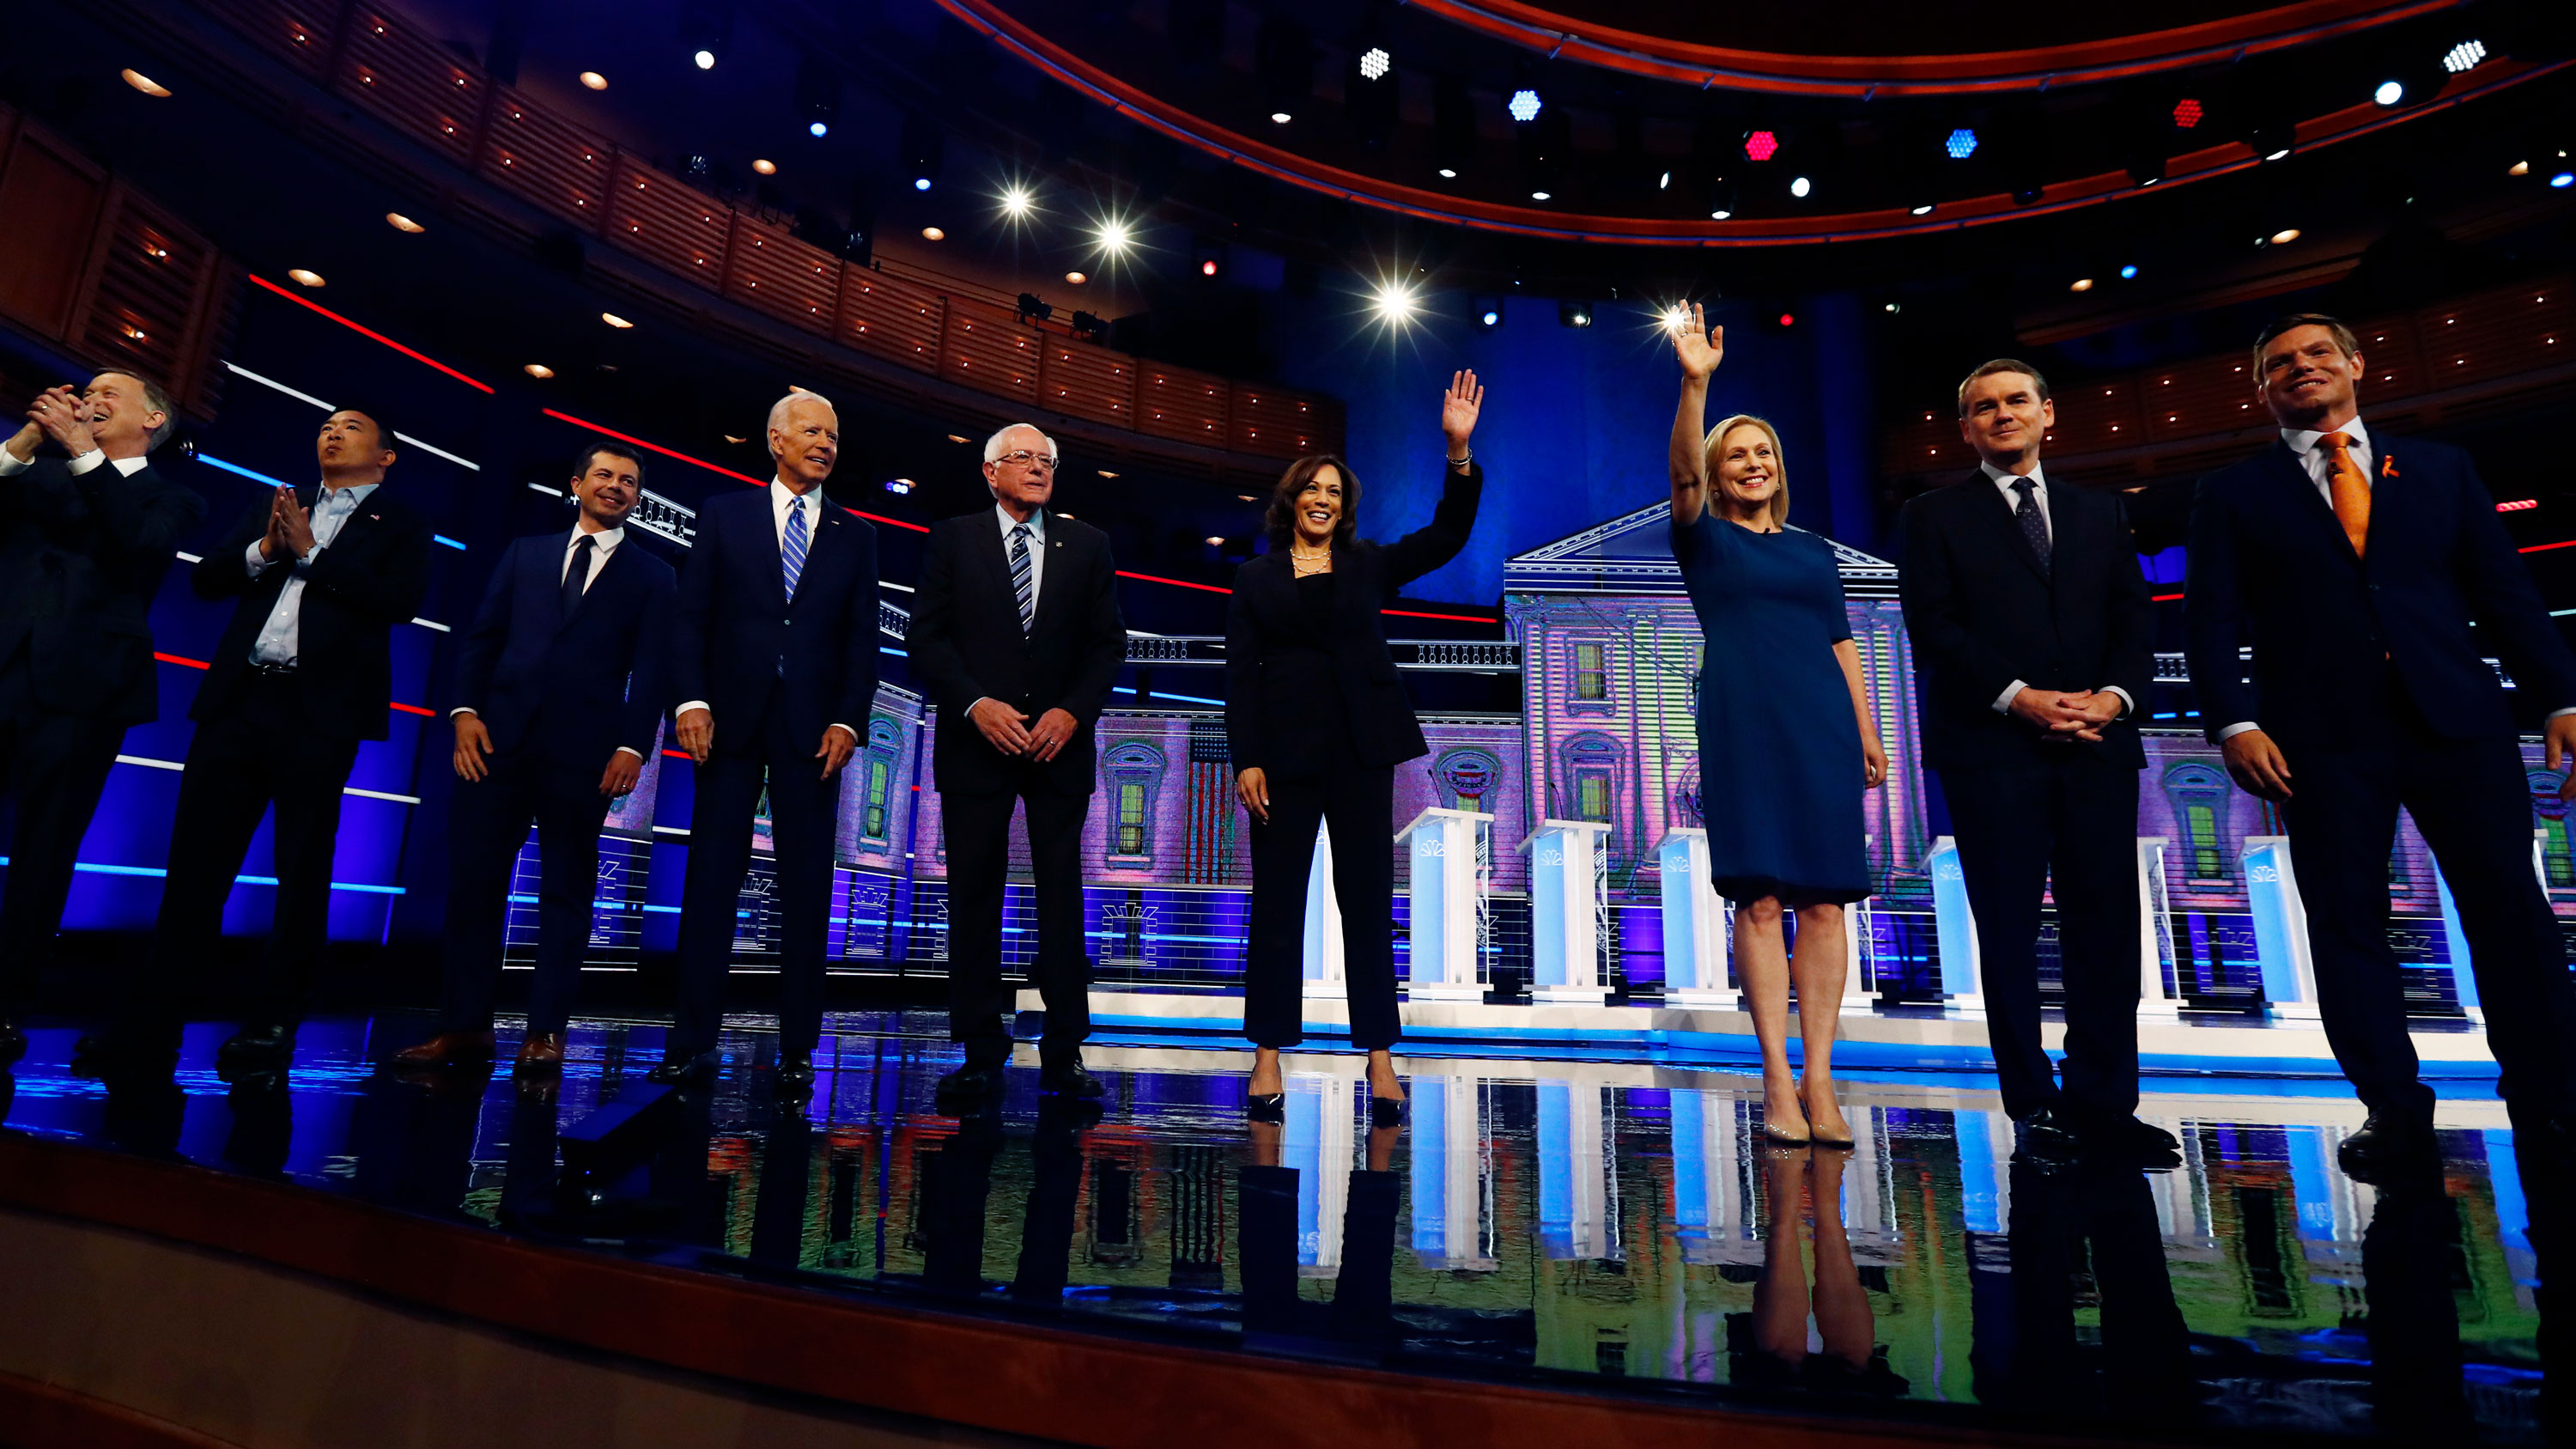 An image of the 2020 Democratic presidential candidates at the July 27 debate.